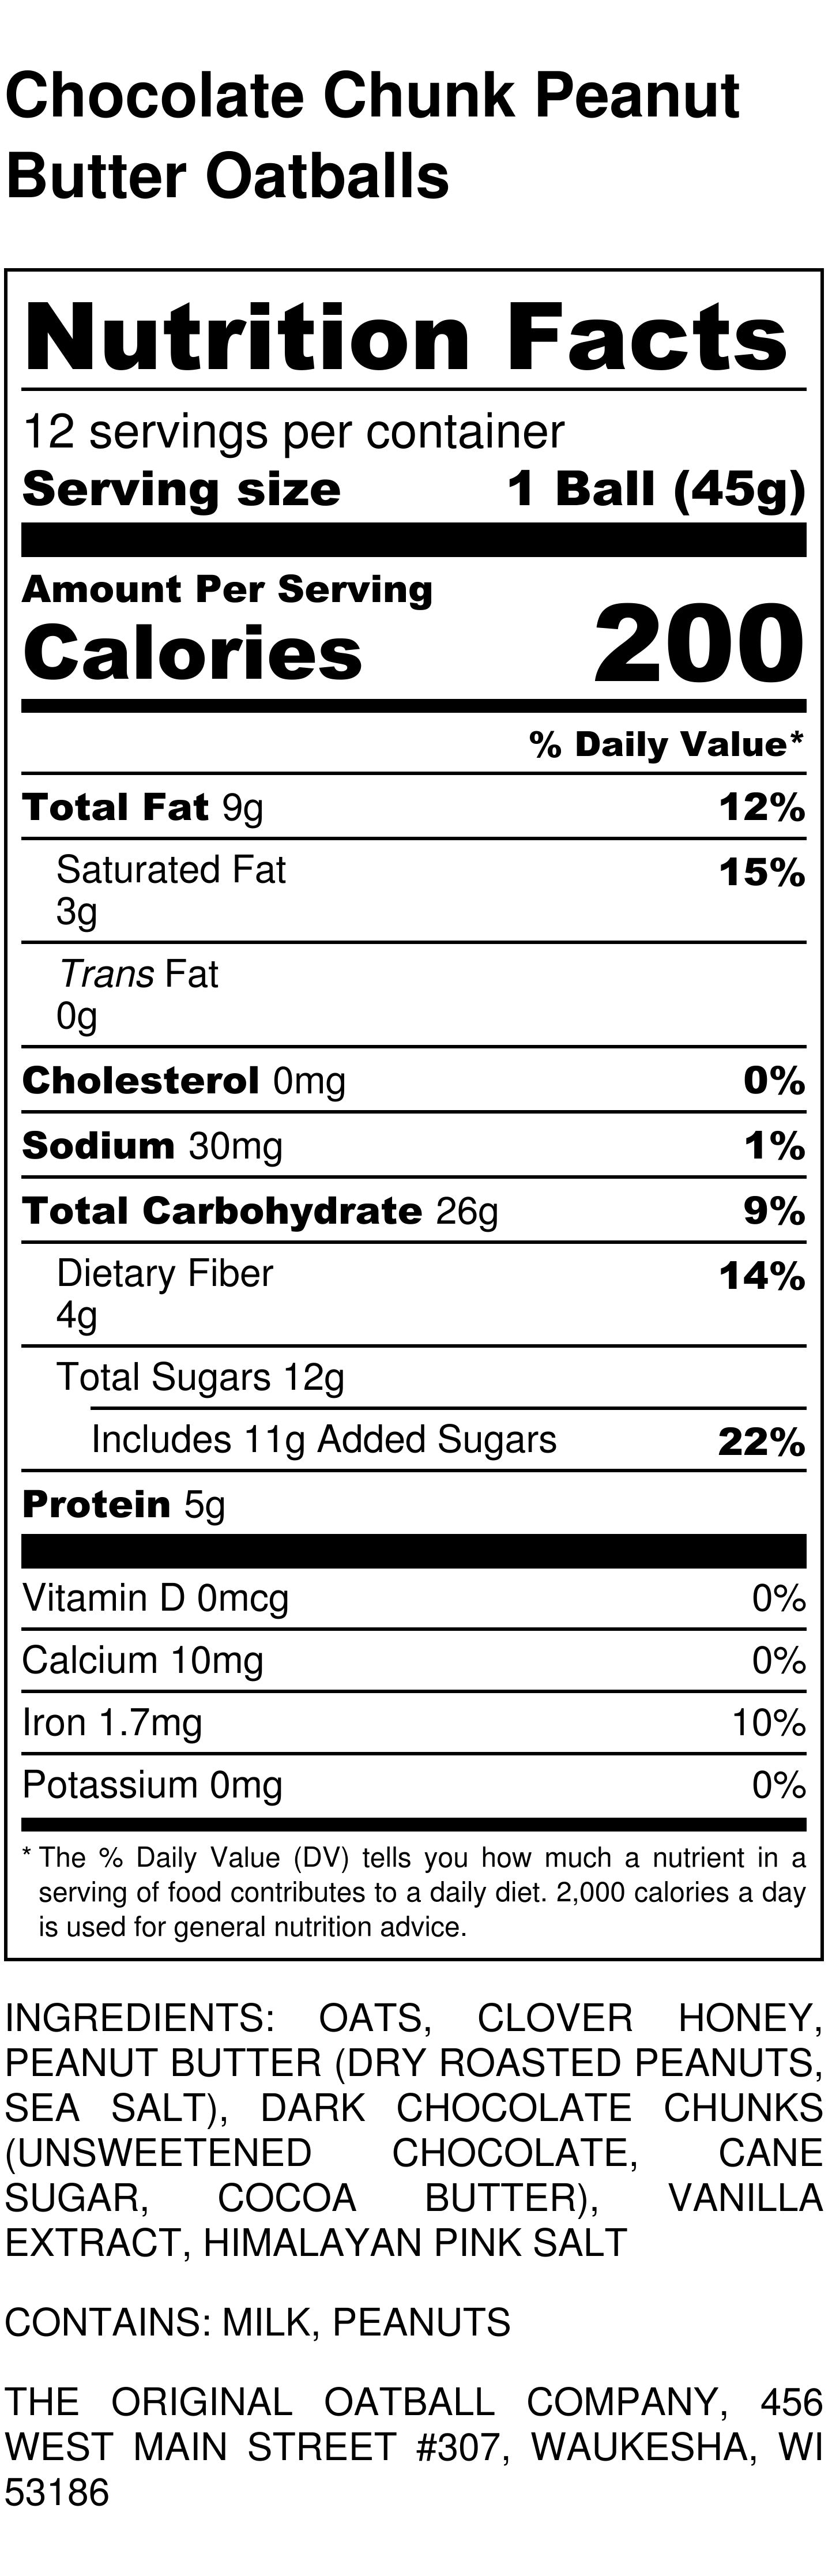 Chocolate Chunk Peanut Butter Oatballs Nutrition Label